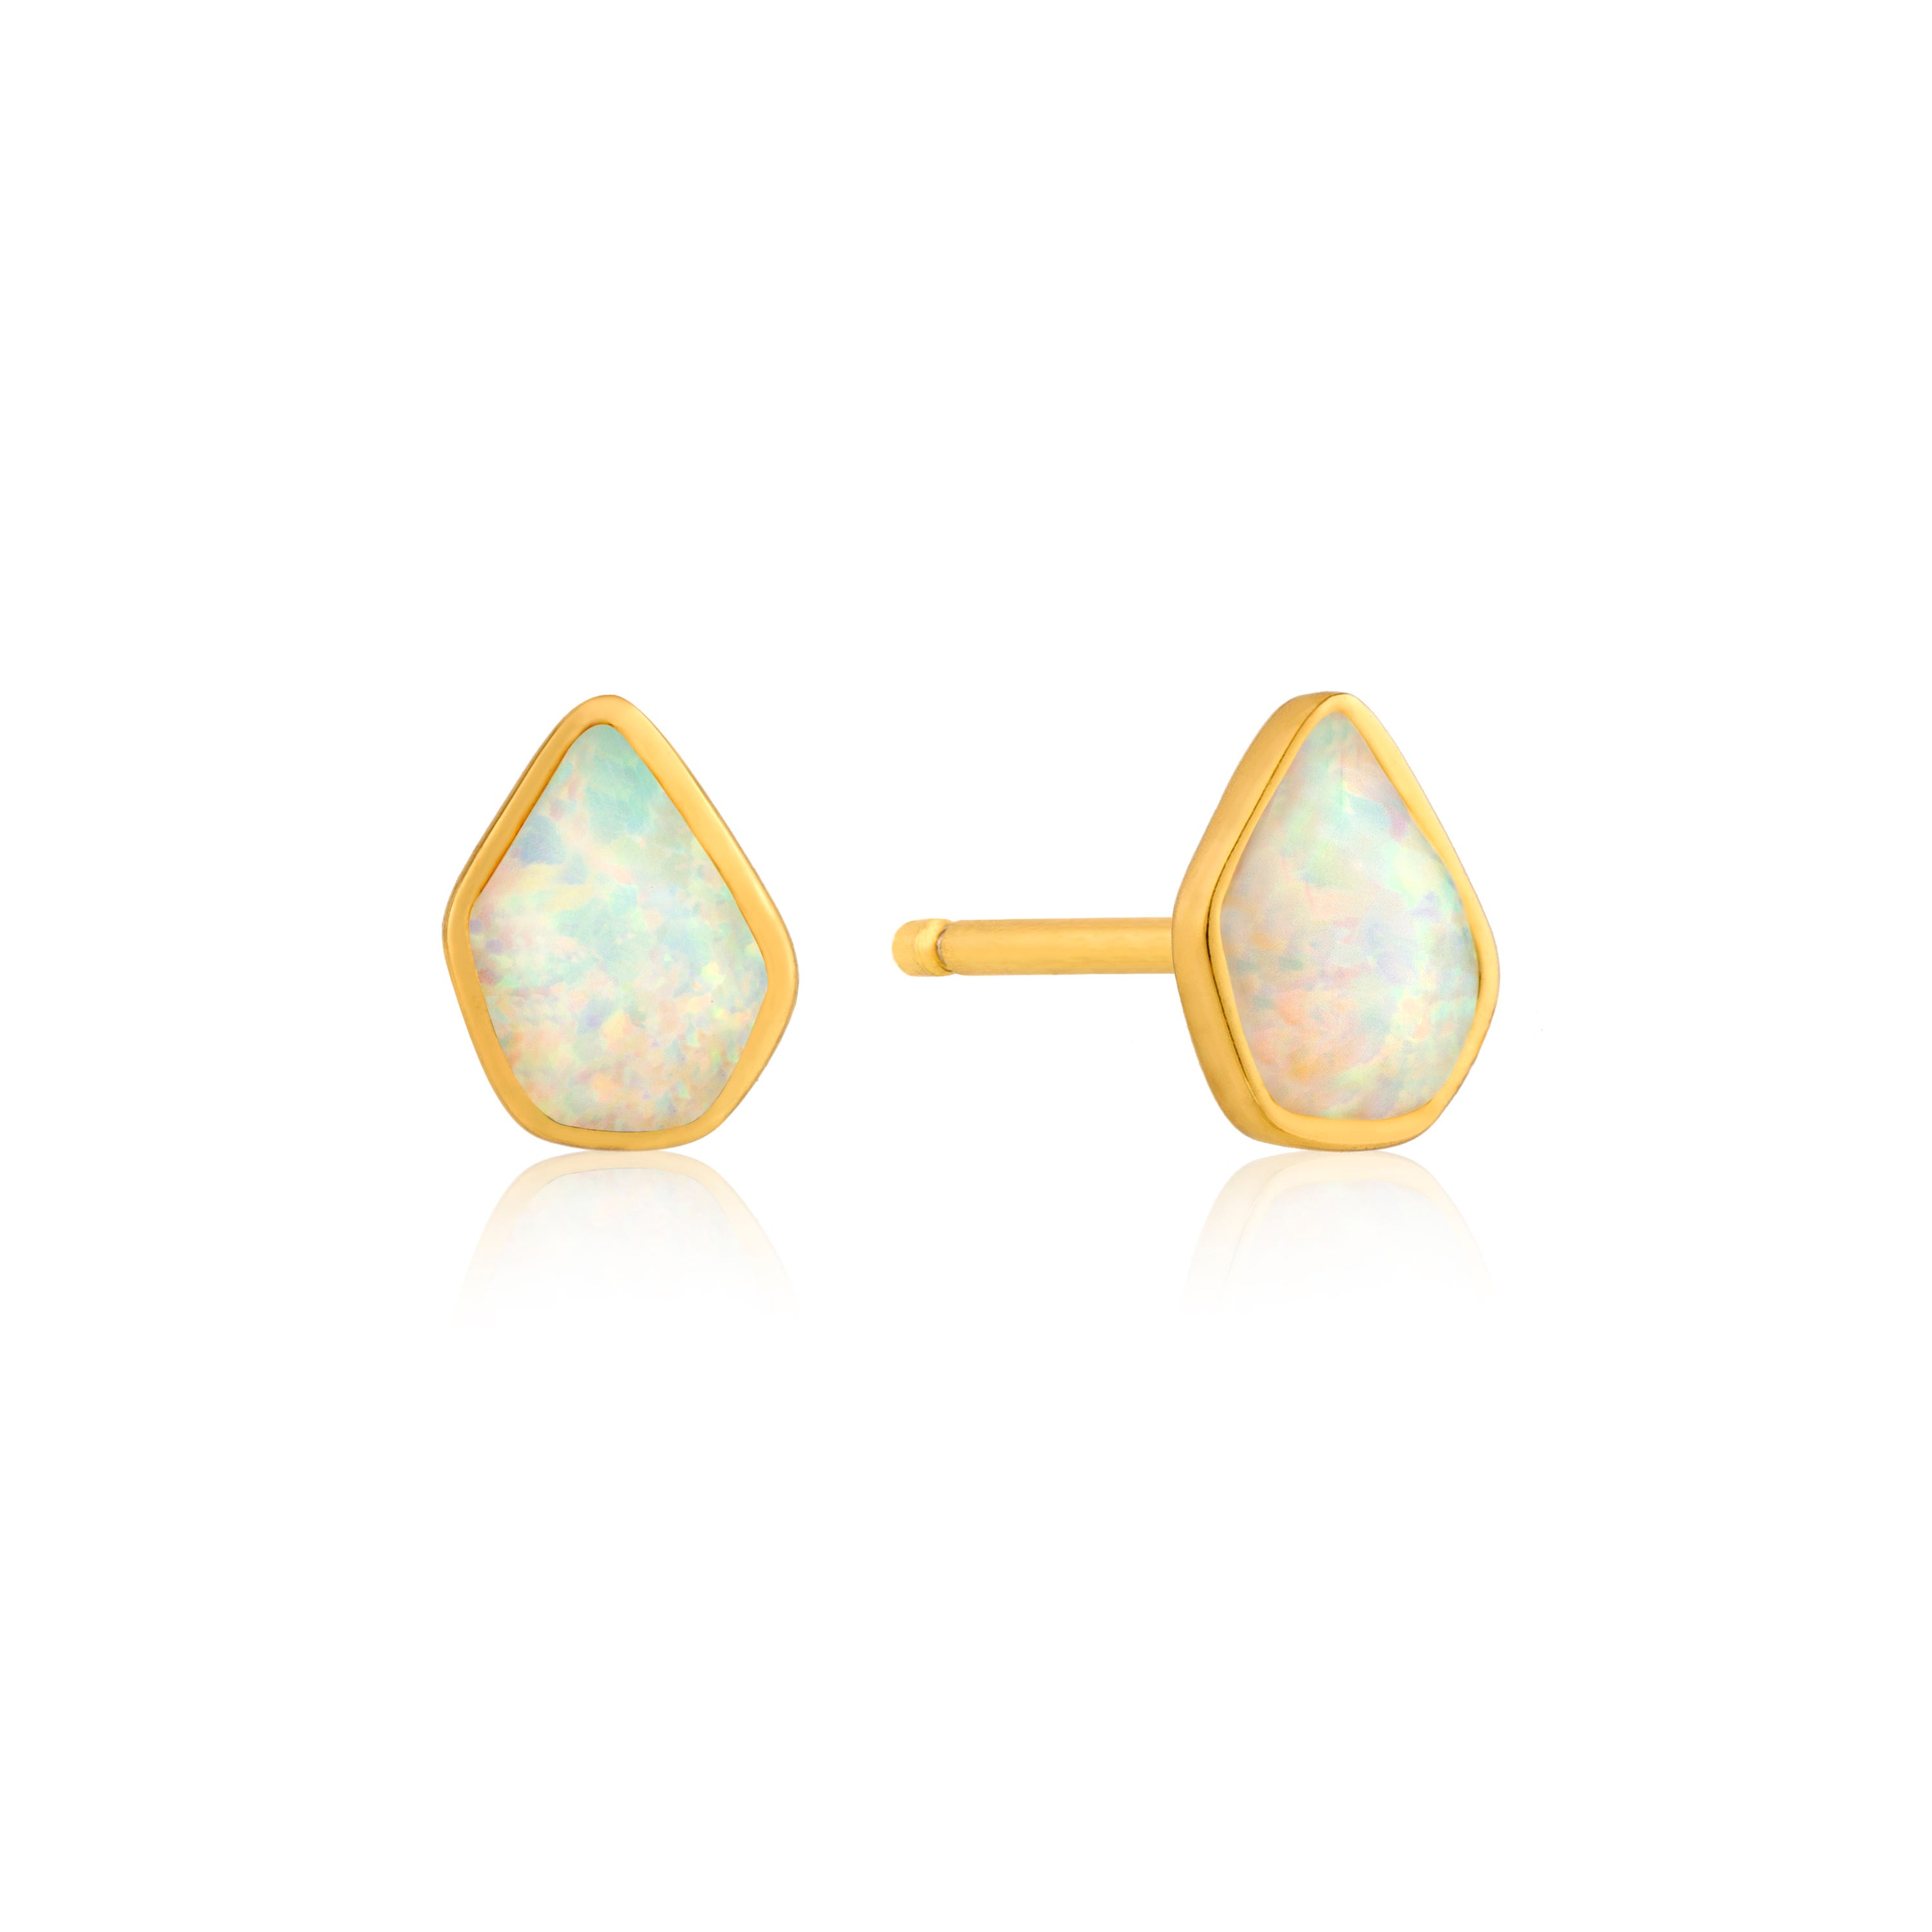 Opal Pear Stud Earrings in Sterling Silver/Gold Plated